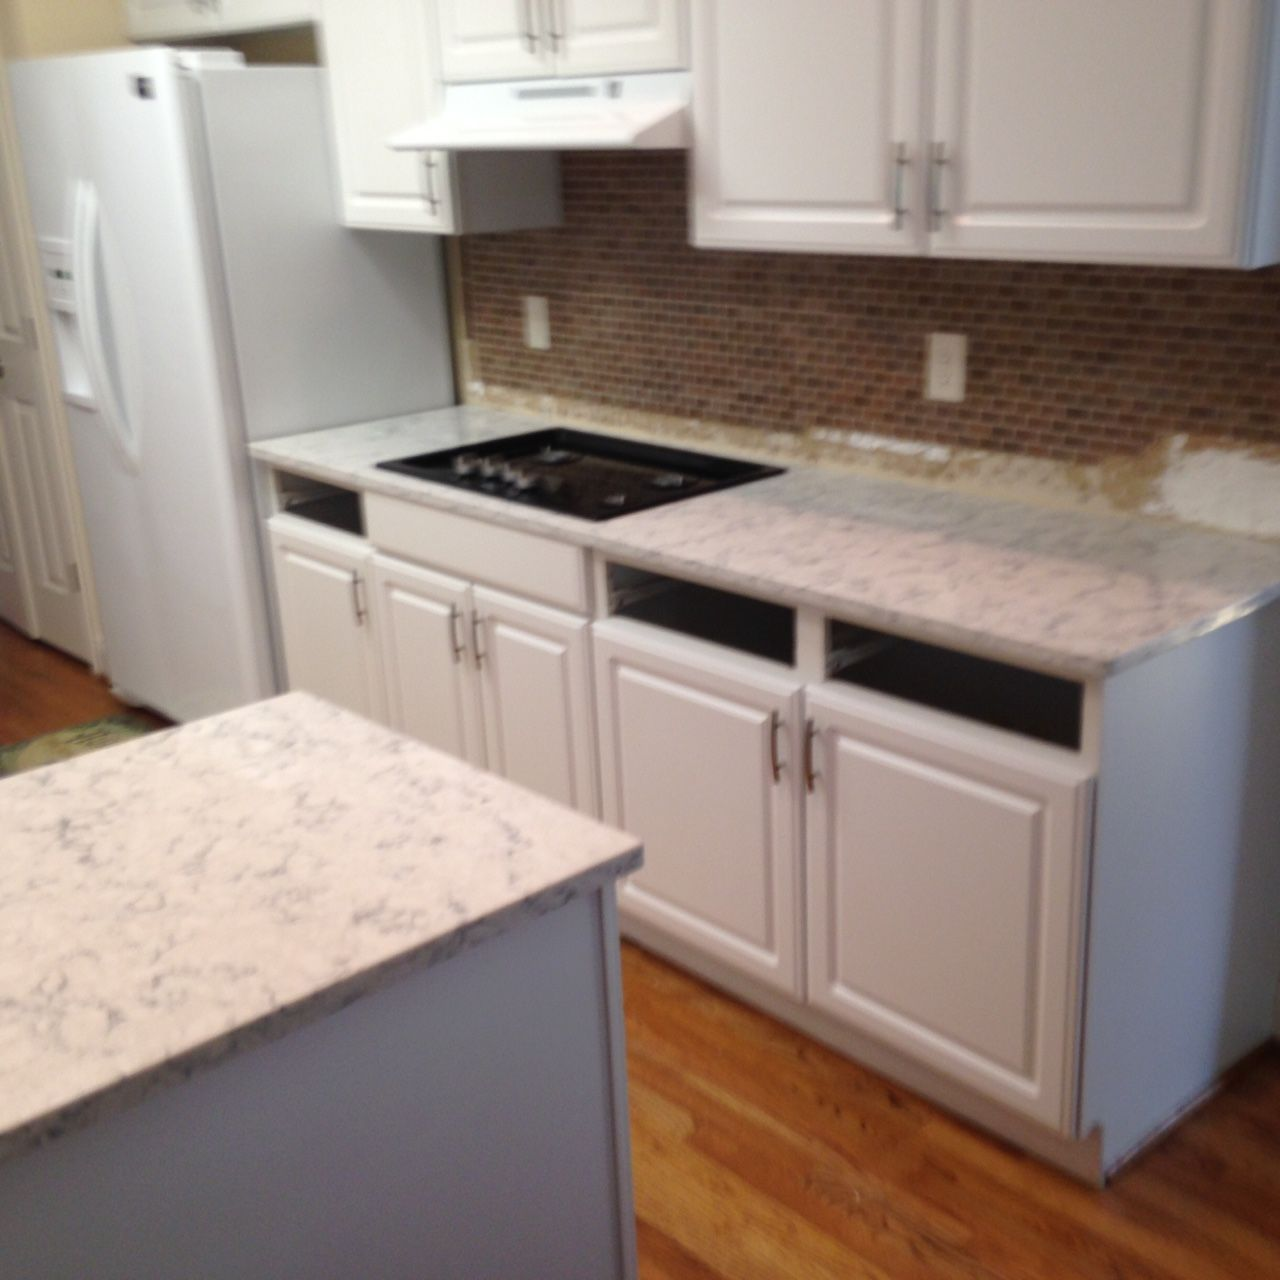 Rococo Lg Viatera Quartz Kitchen Countertop Install For The Purdy